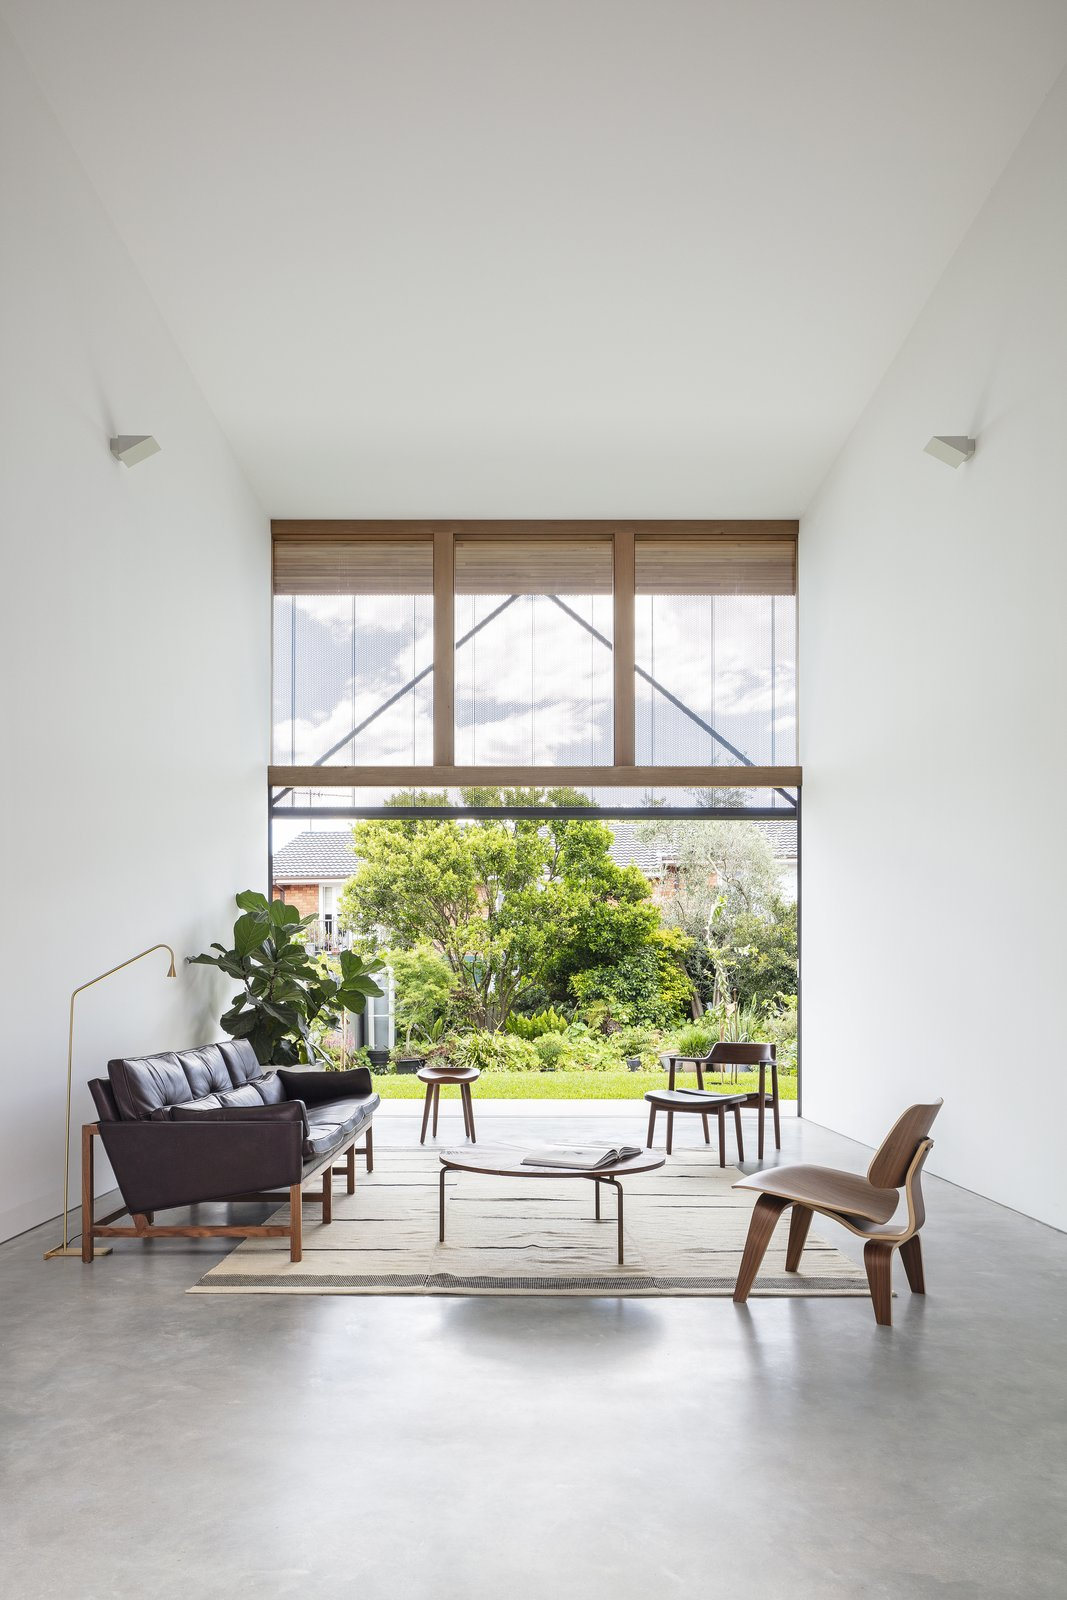 Courted House Breakspear Architects living room